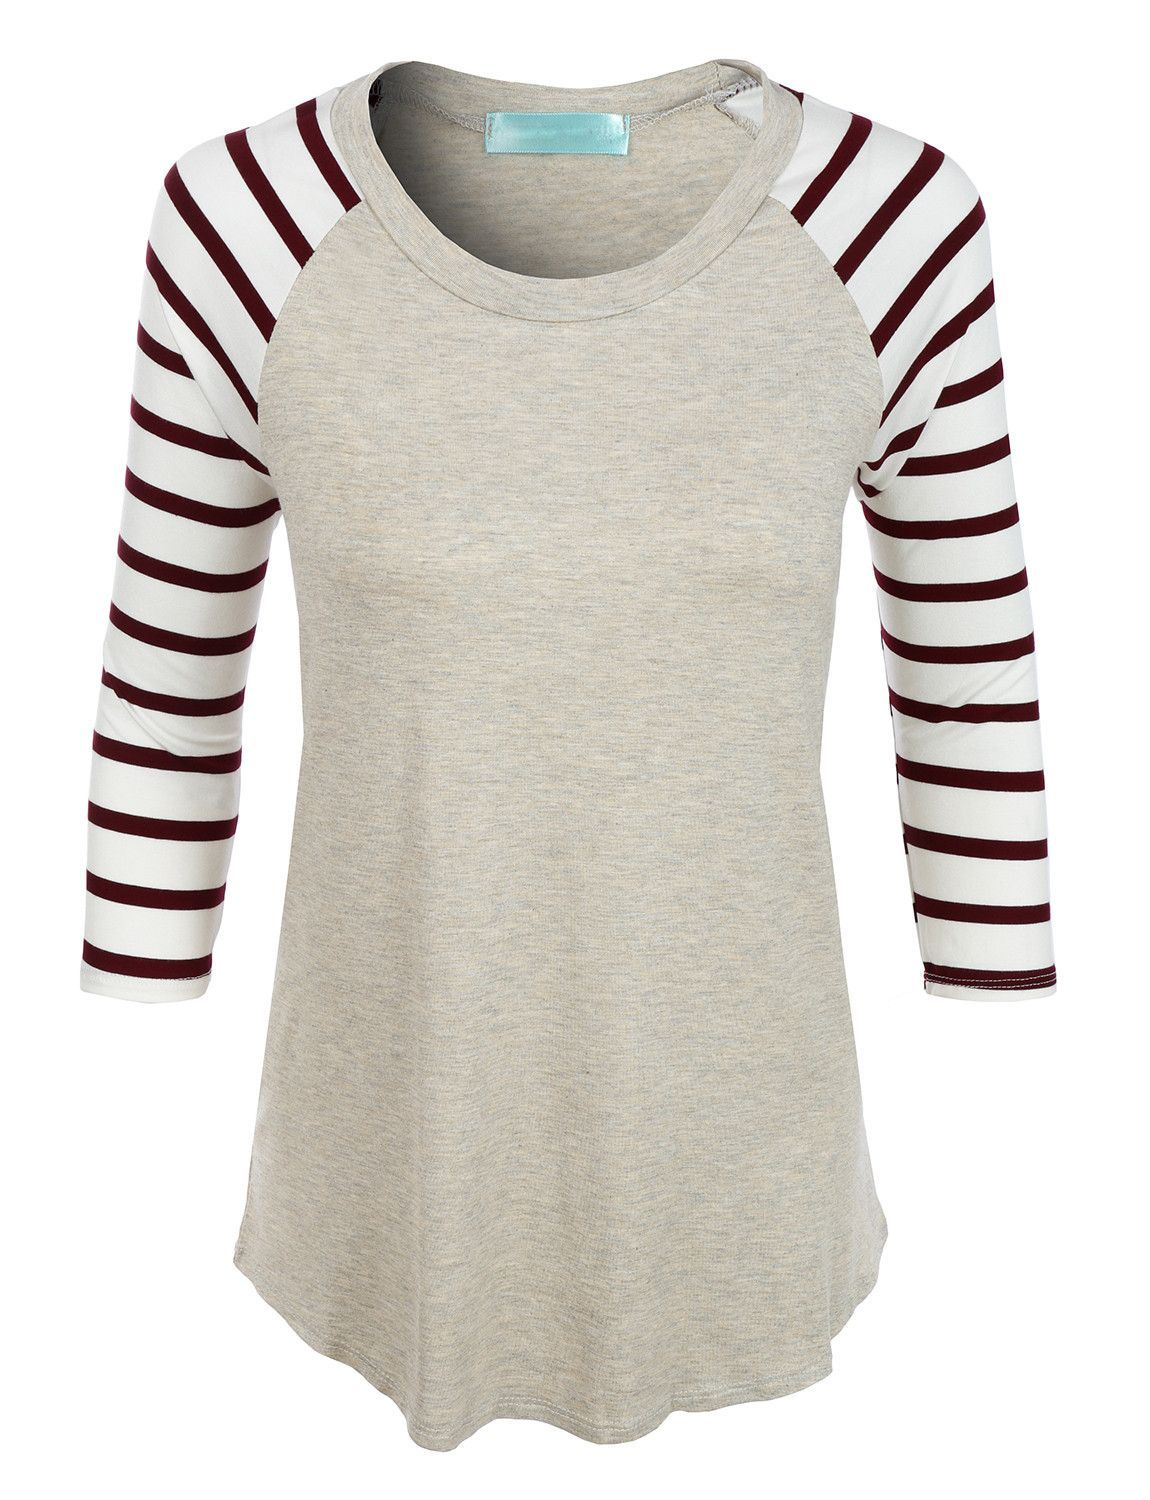 8f5ca393dfa Look casual and trendy in this lightweight round neck striped raglan sleeve  t-shirt. Made from a lightweight and super soft material